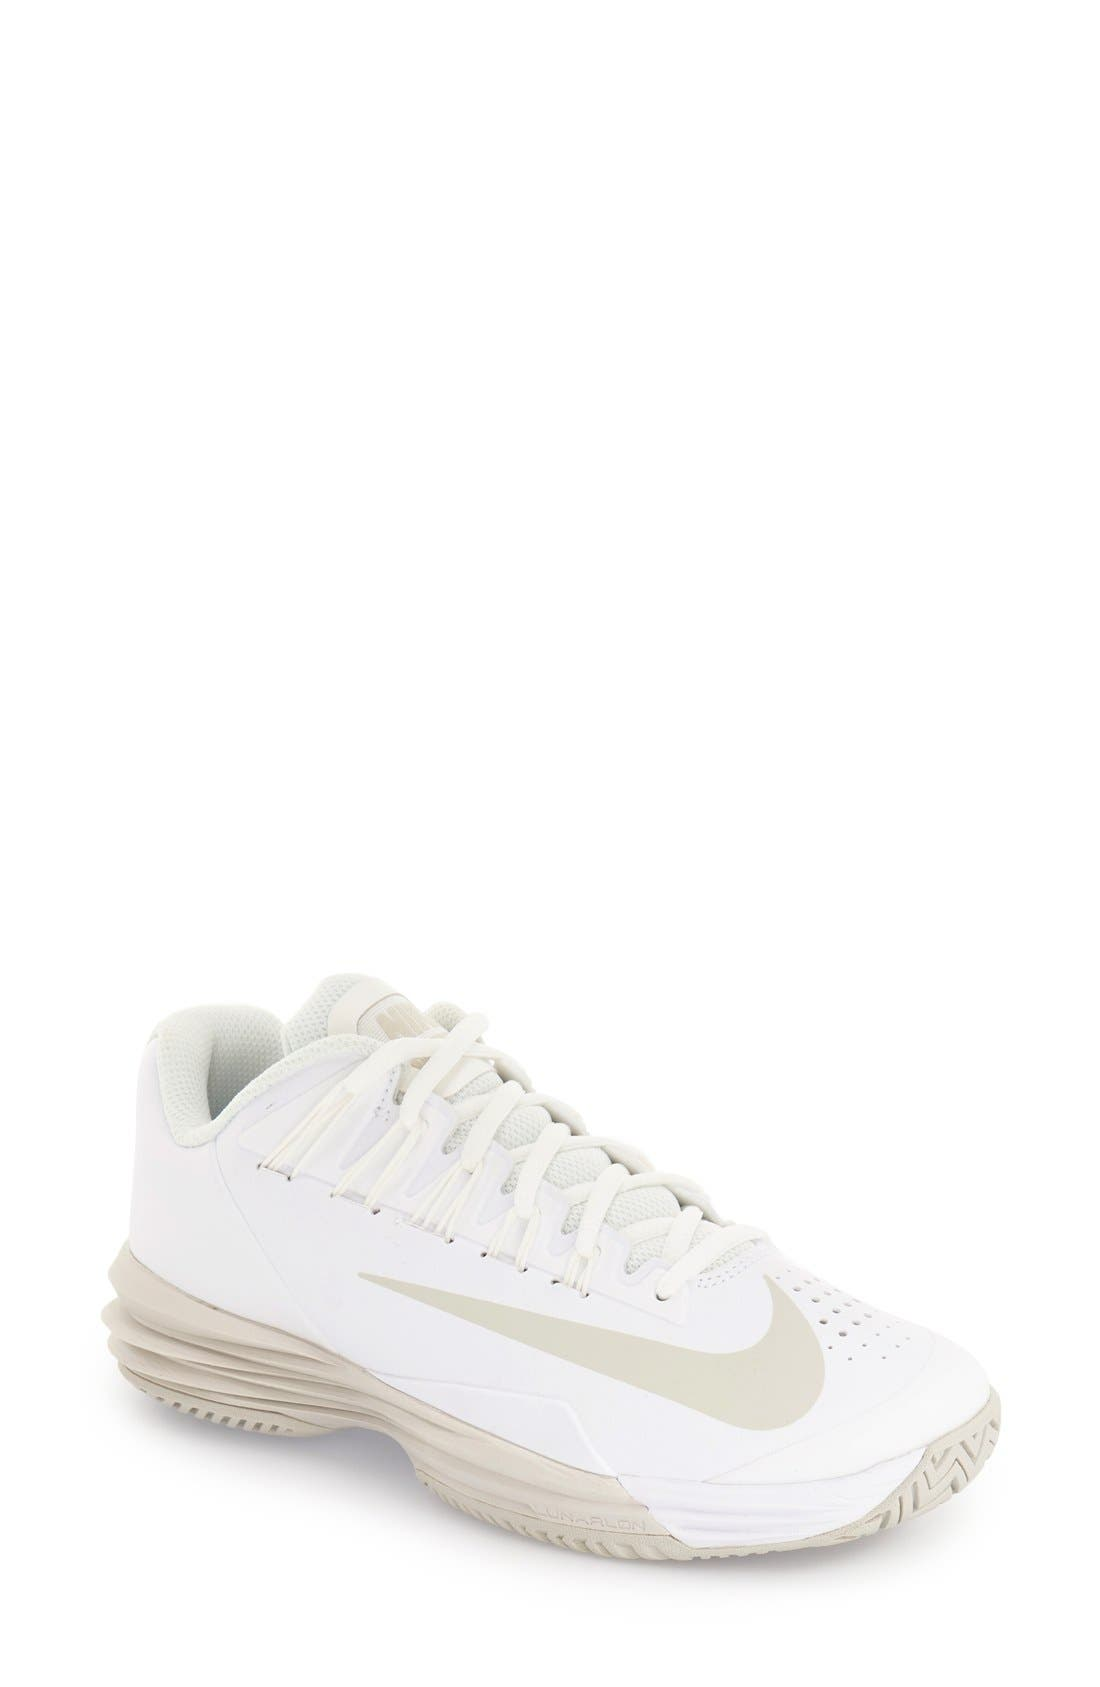 Alternate Image 1 Selected - Nike 'Lunar Ballistec 1.5' Tennis Shoe (Women)